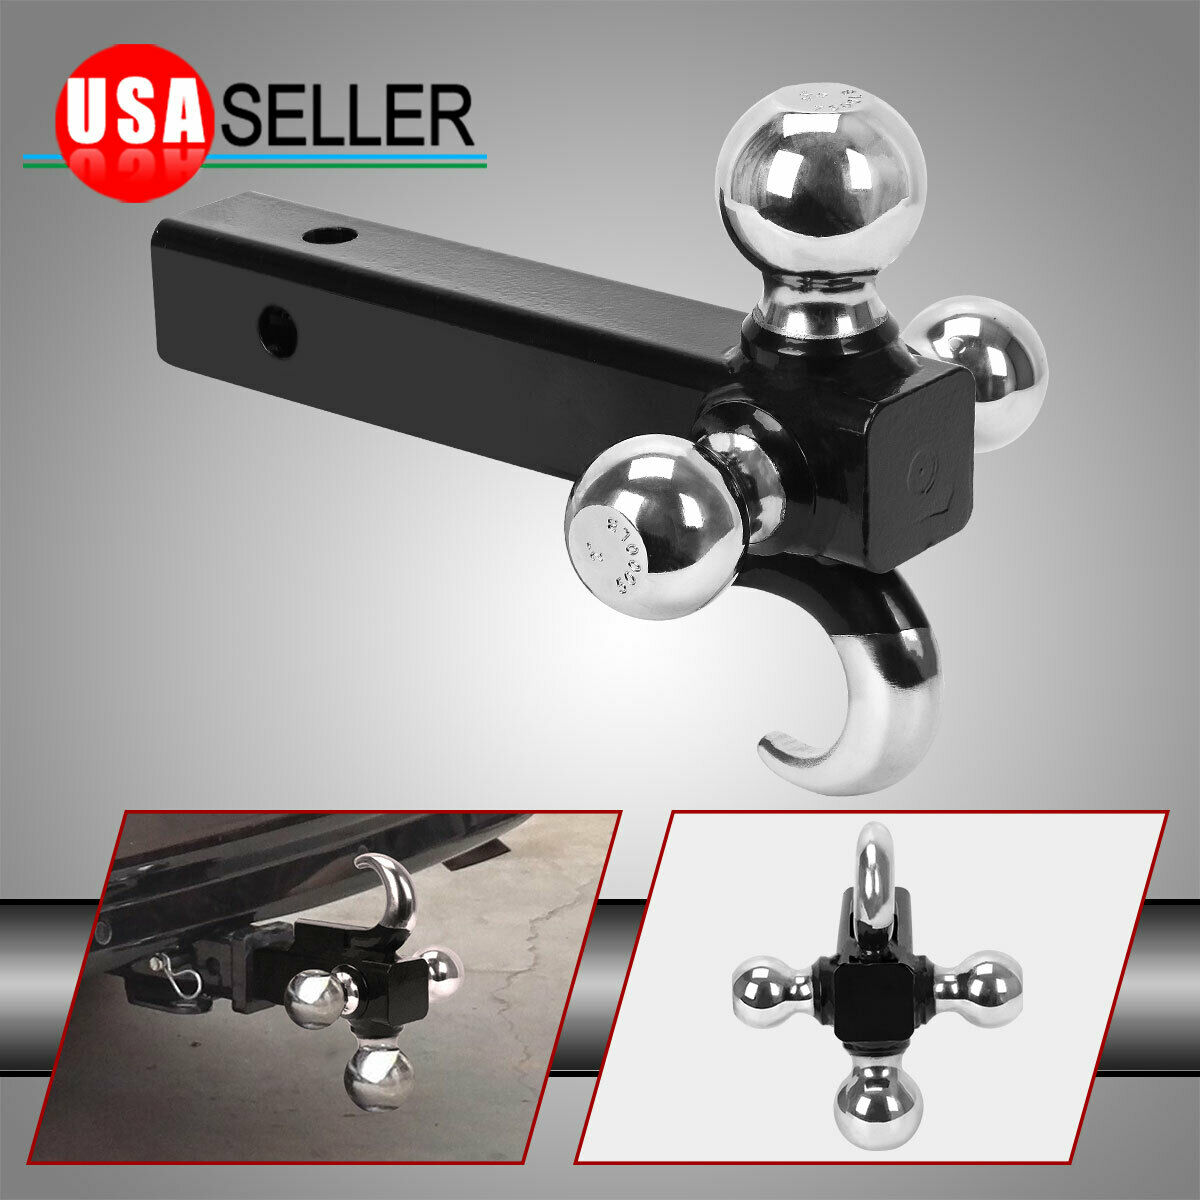 Hollow Shank with Pin and Clip BUDDYSER Trailer Hitch Tri Ball Mount Black 1-7//8,2/&2-5//16 with Hook